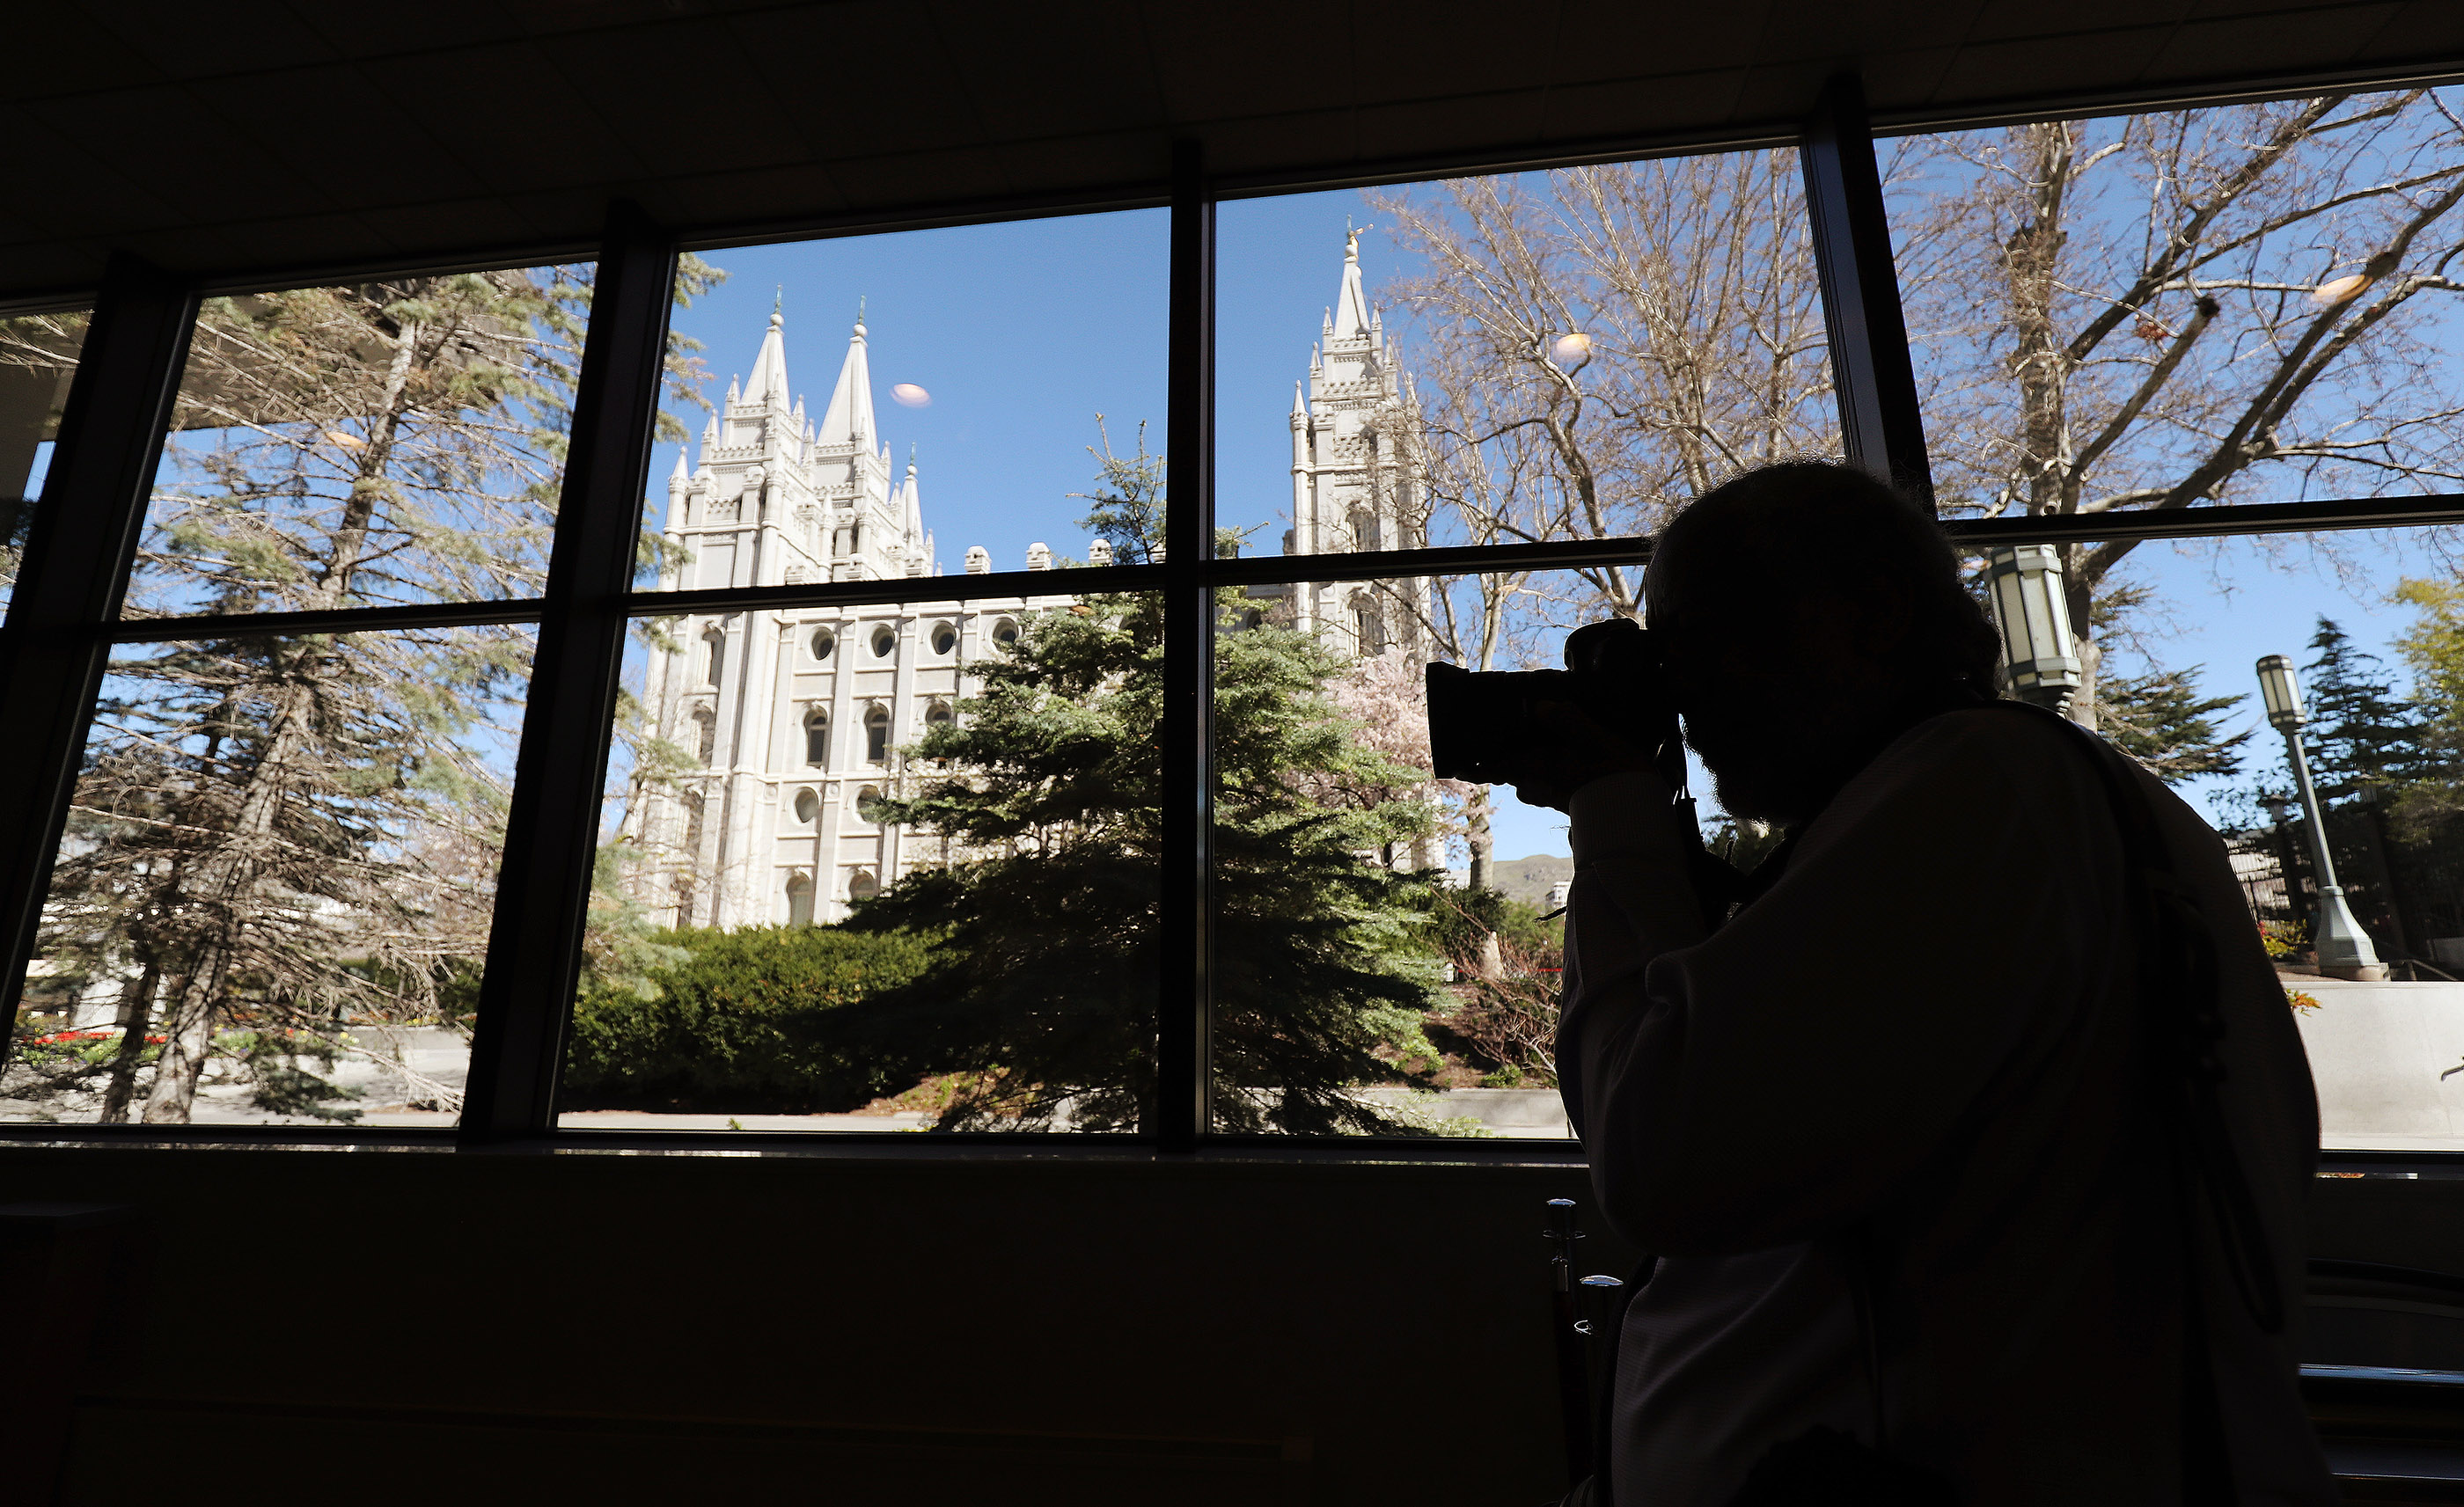 A photographer shoots a photo in the South Visitors' Center on Temple Square in Salt Lake City on Friday, April 19, 2019. Leadership of The Church of Jesus Christ or Latter-day Saints announced renovation plans for the Salt Lake Temple and changes to the temple grounds and Temple Square, including the visitors center.